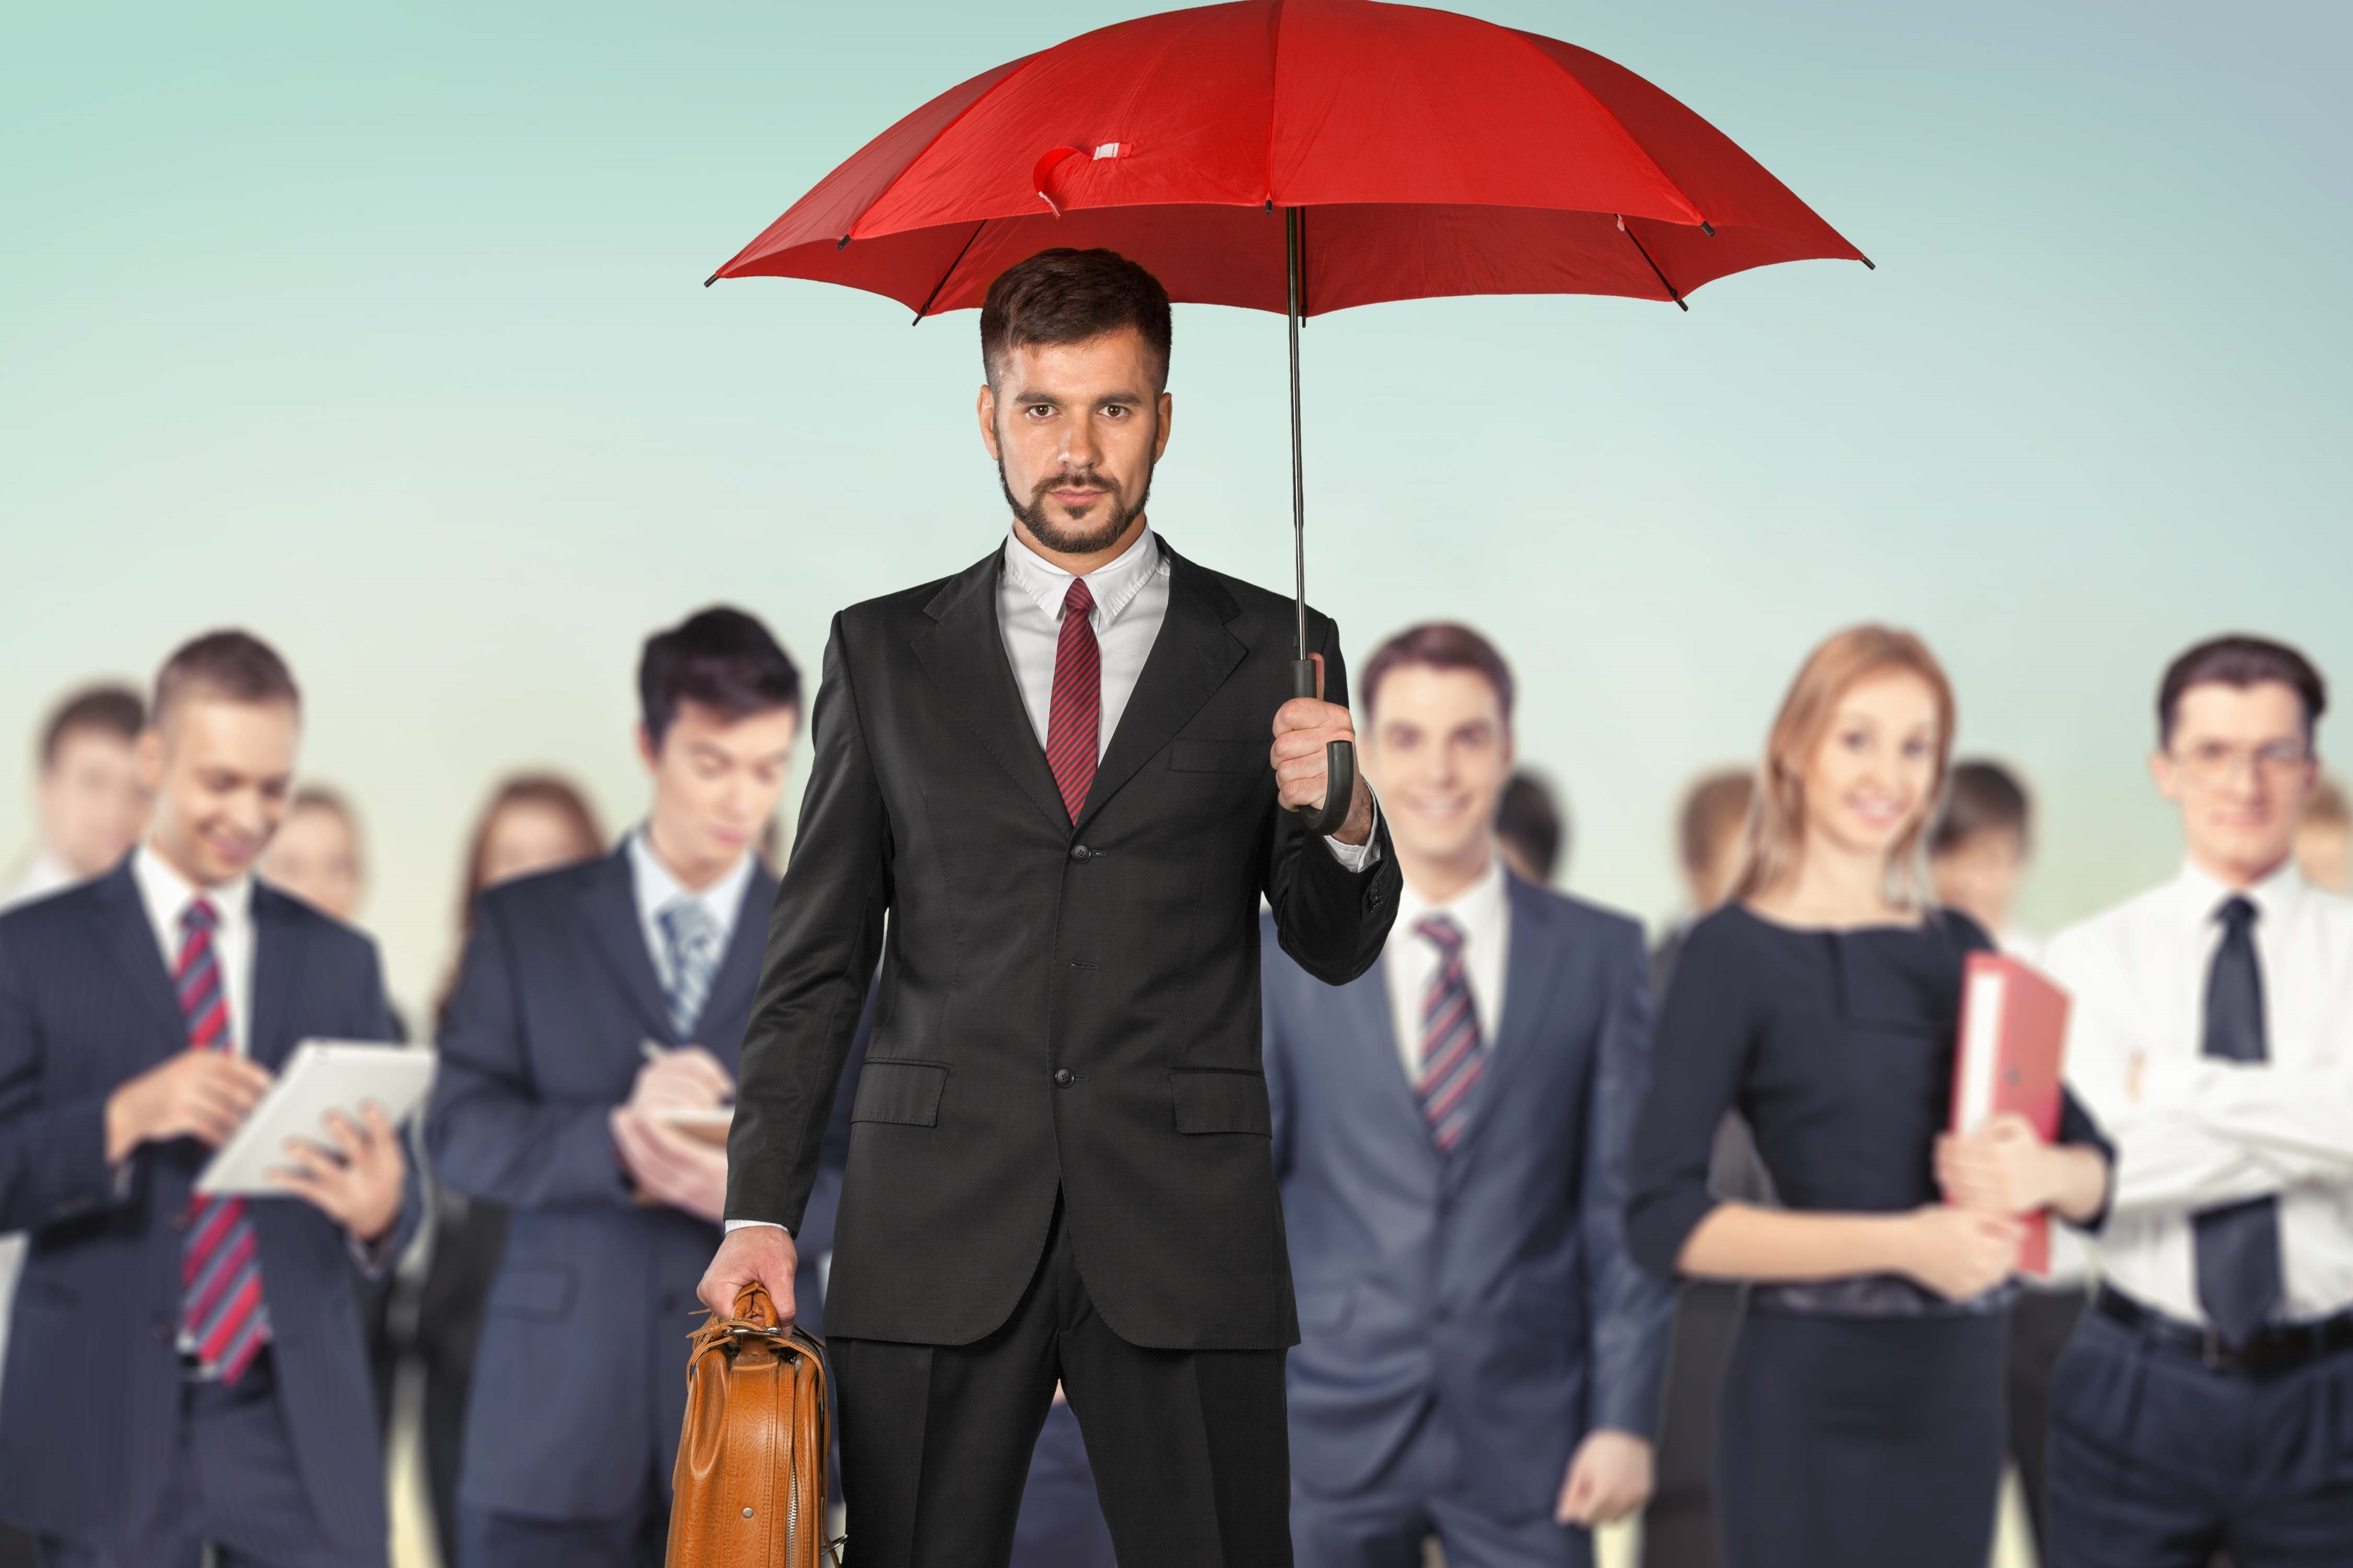 Man holding up the umbrella company with employees in the background